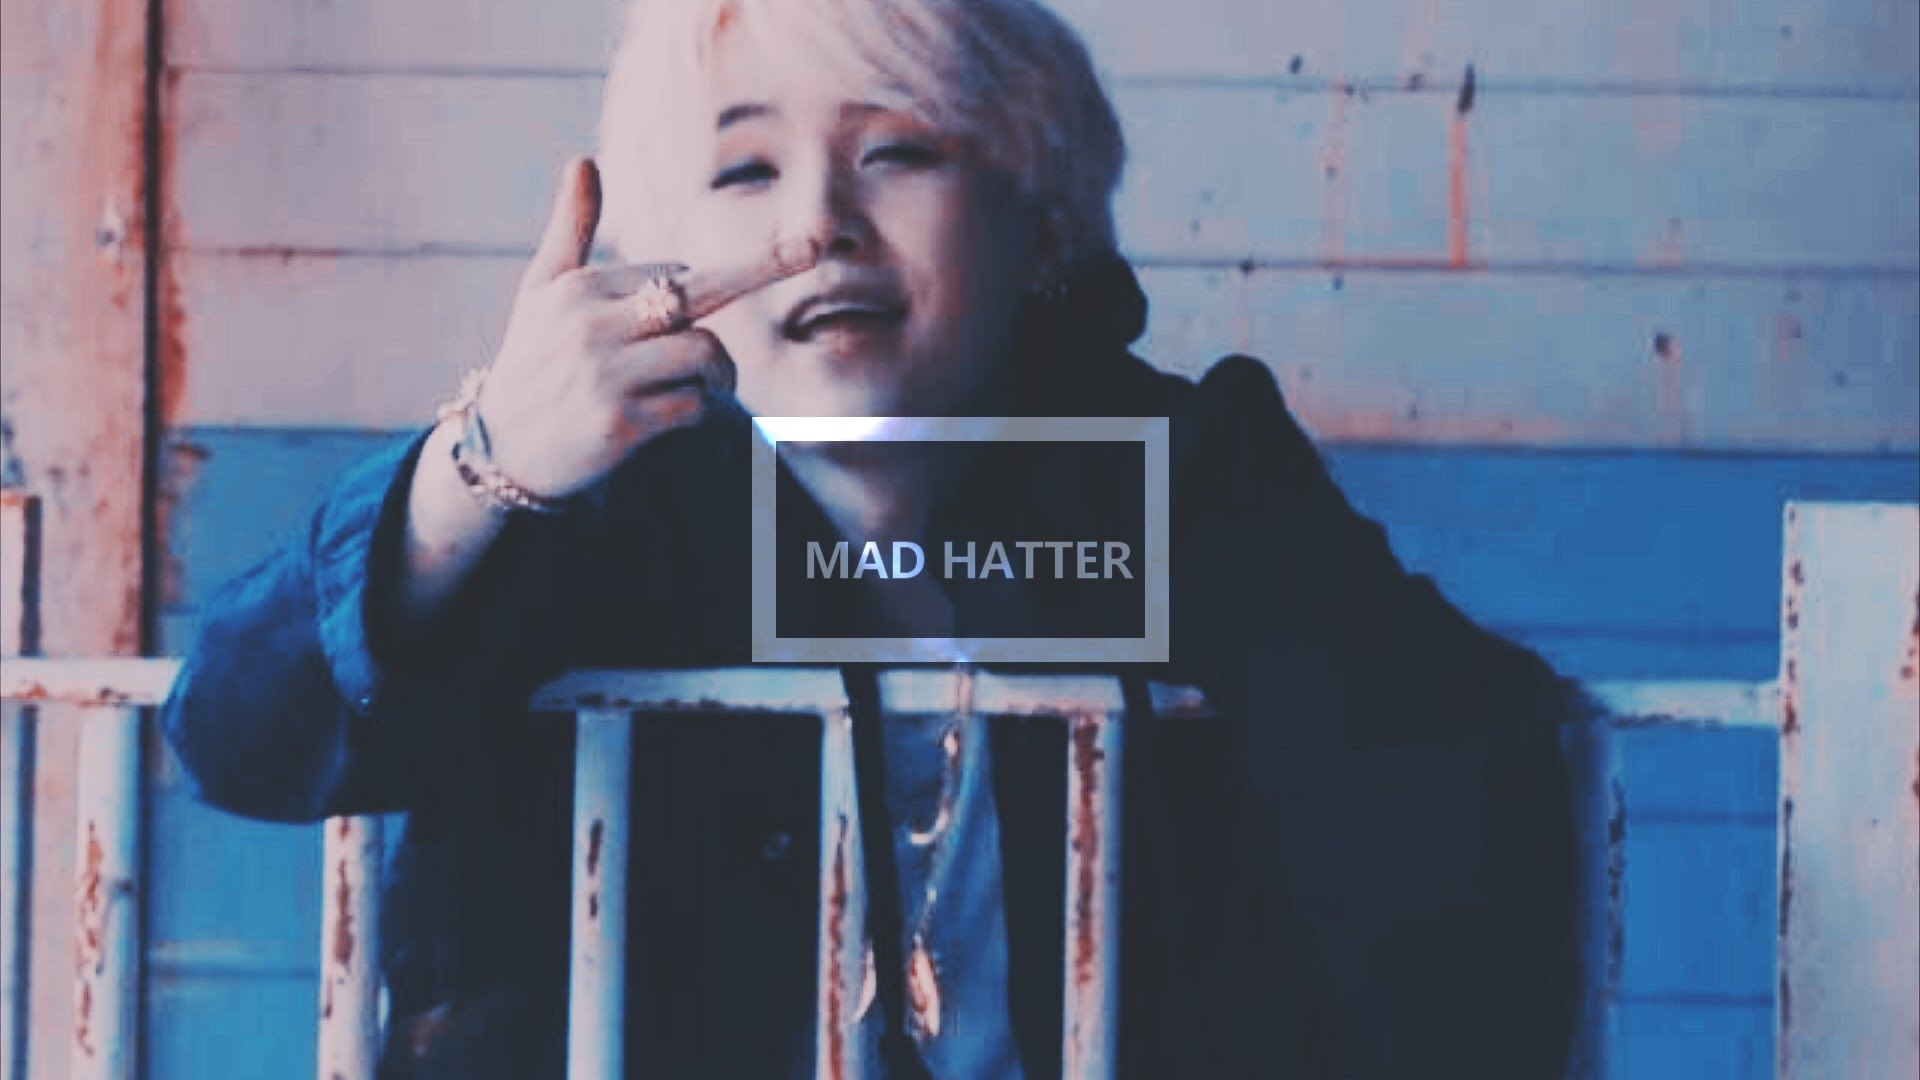 [speed edit] AGUST D mad hatter 1920x1080